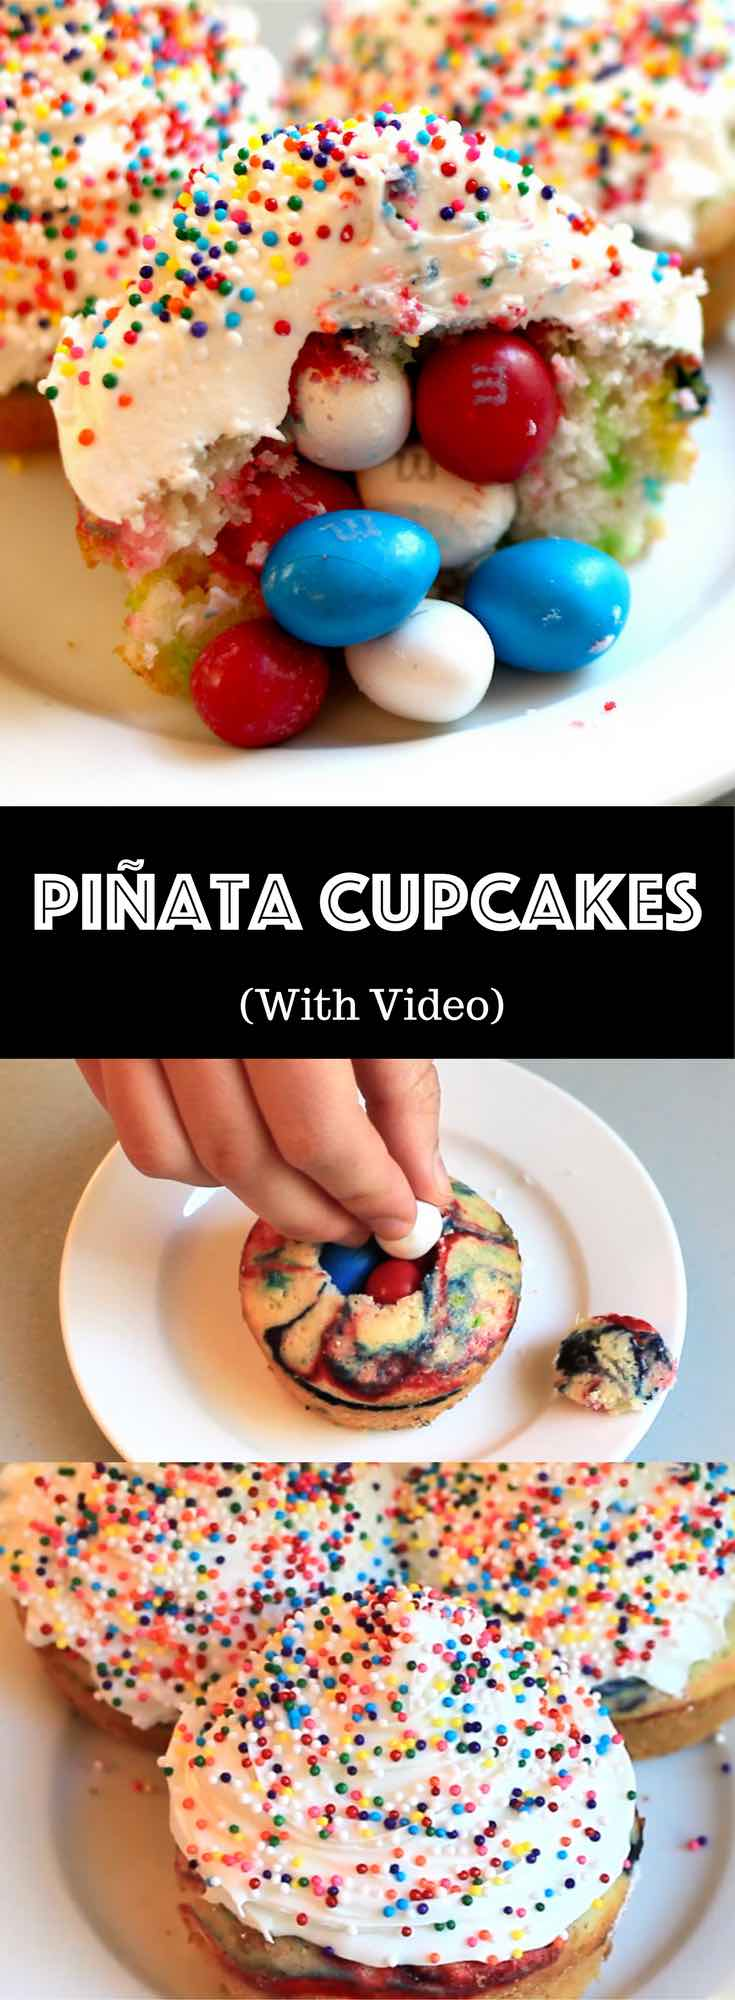 How To Make Party Surprise Piñata Cupcakes – an easy and fun party recipe with video tutorials that show you how to make piñata cupcakes. Surprise your guests with the hidden red, white and blue M&Ms inside these tie-dye cupcakes! So good! It's great for snack, parties, or dessert! Fourth of July recipe. Quick and easy recipe. Video recipe. | Tipbuzz.com